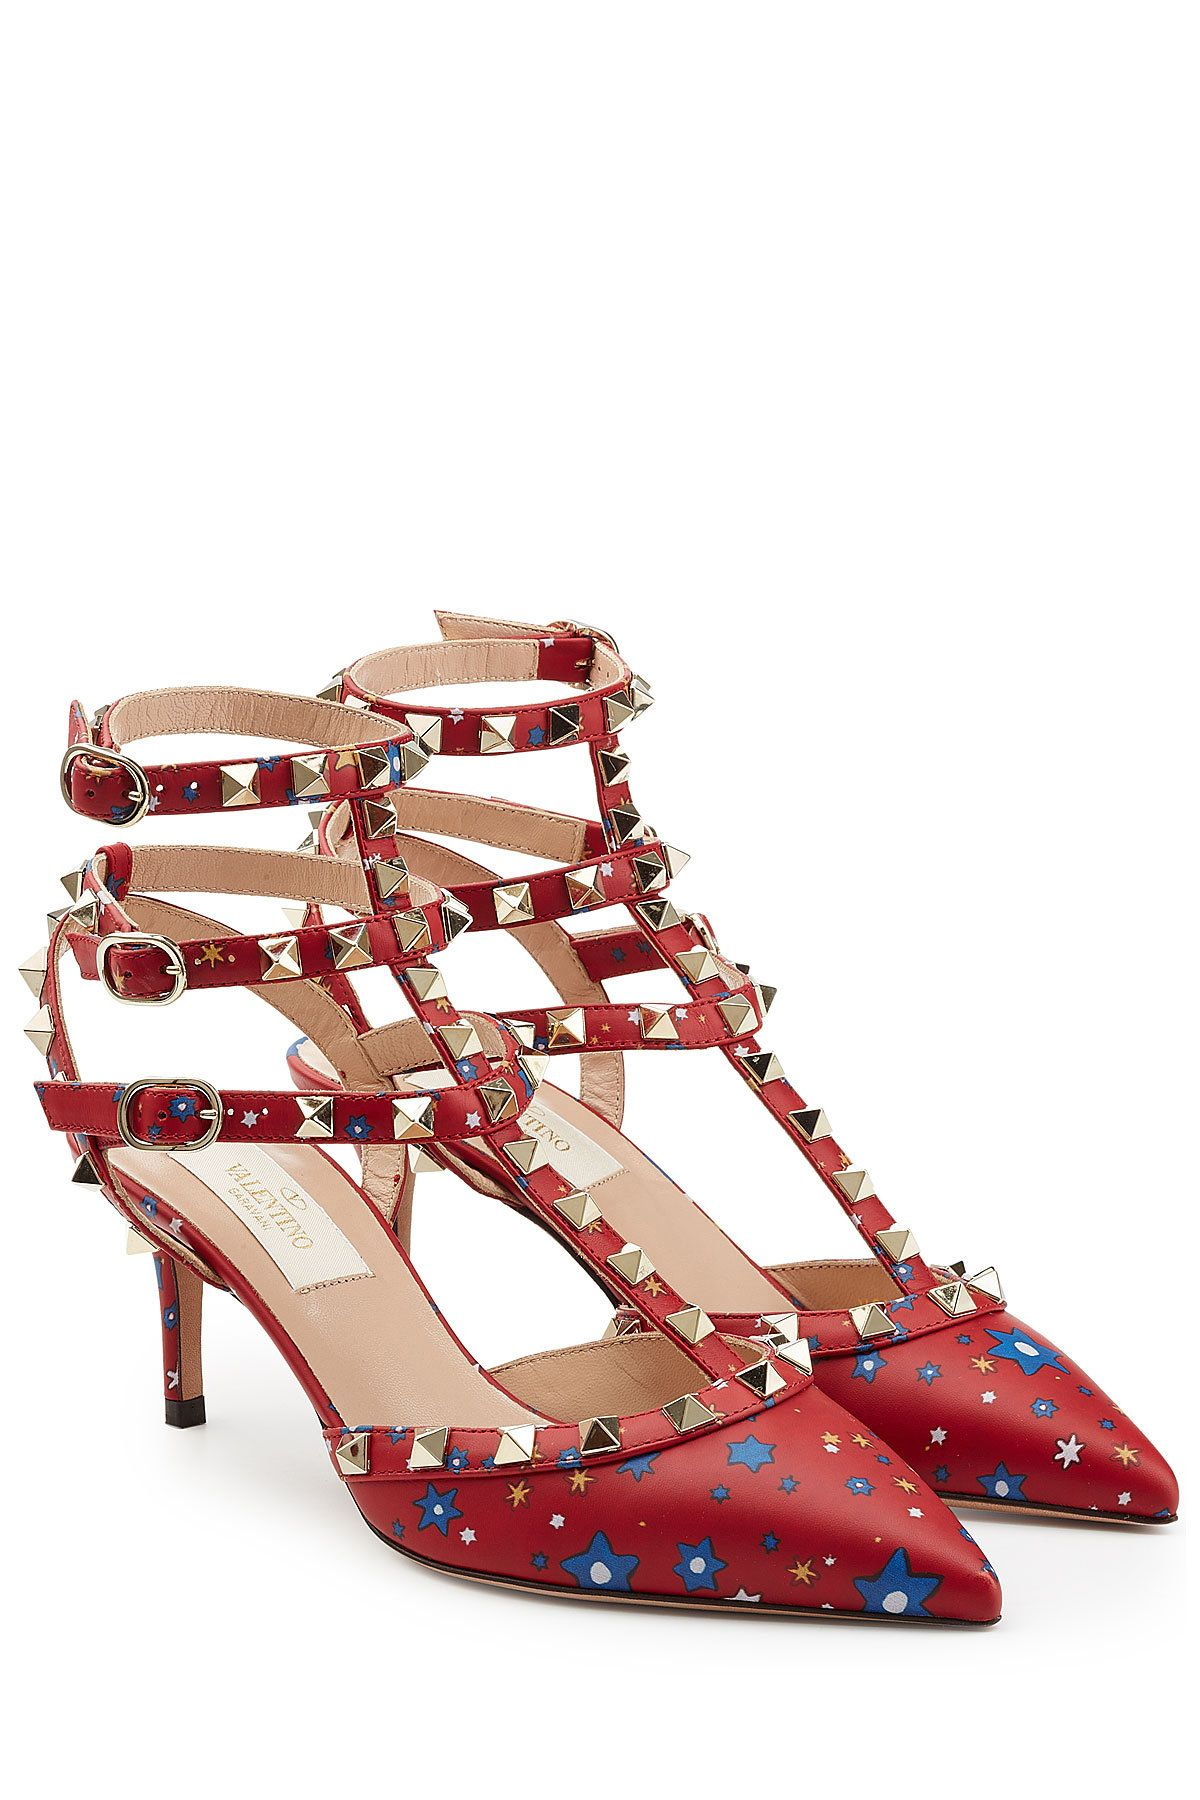 Printed Leather Rockstud Kitten Heel Pumps - Valentino | WOMEN